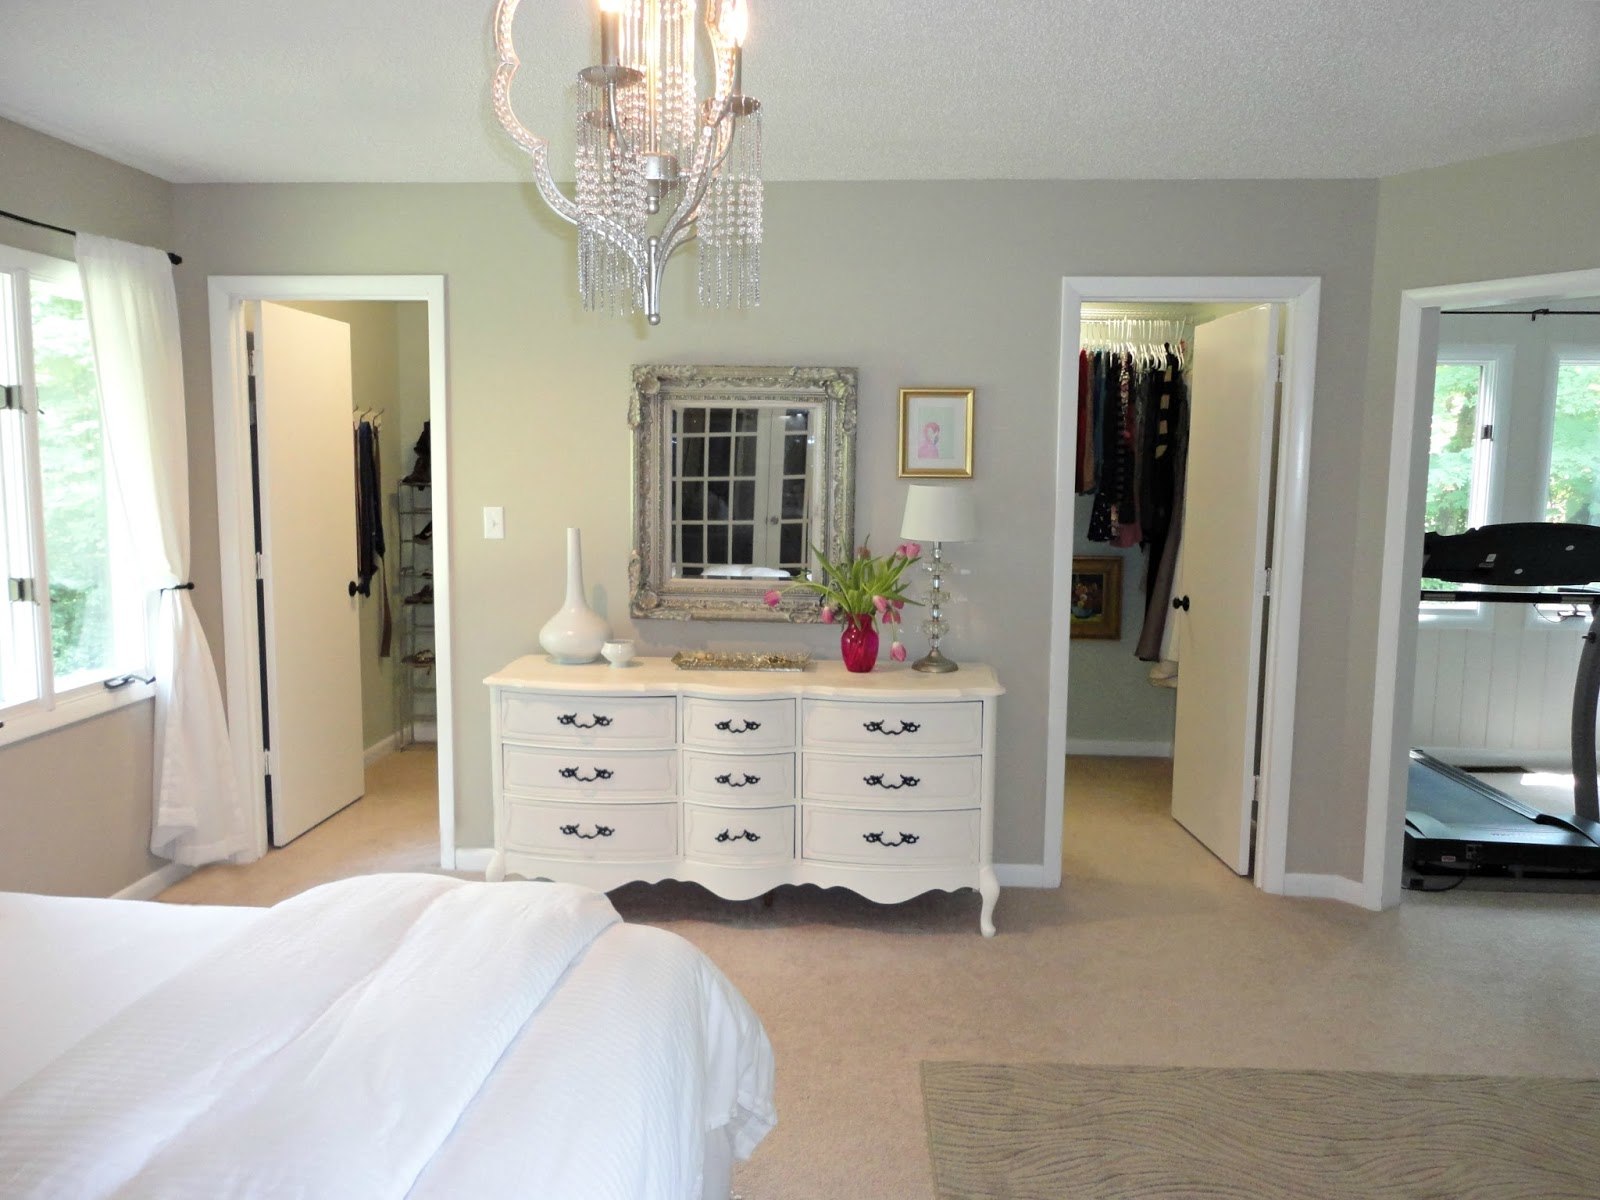 Walk in closet designs for a master bedroom a unique - Walk in closet designs for a master bedroom ...